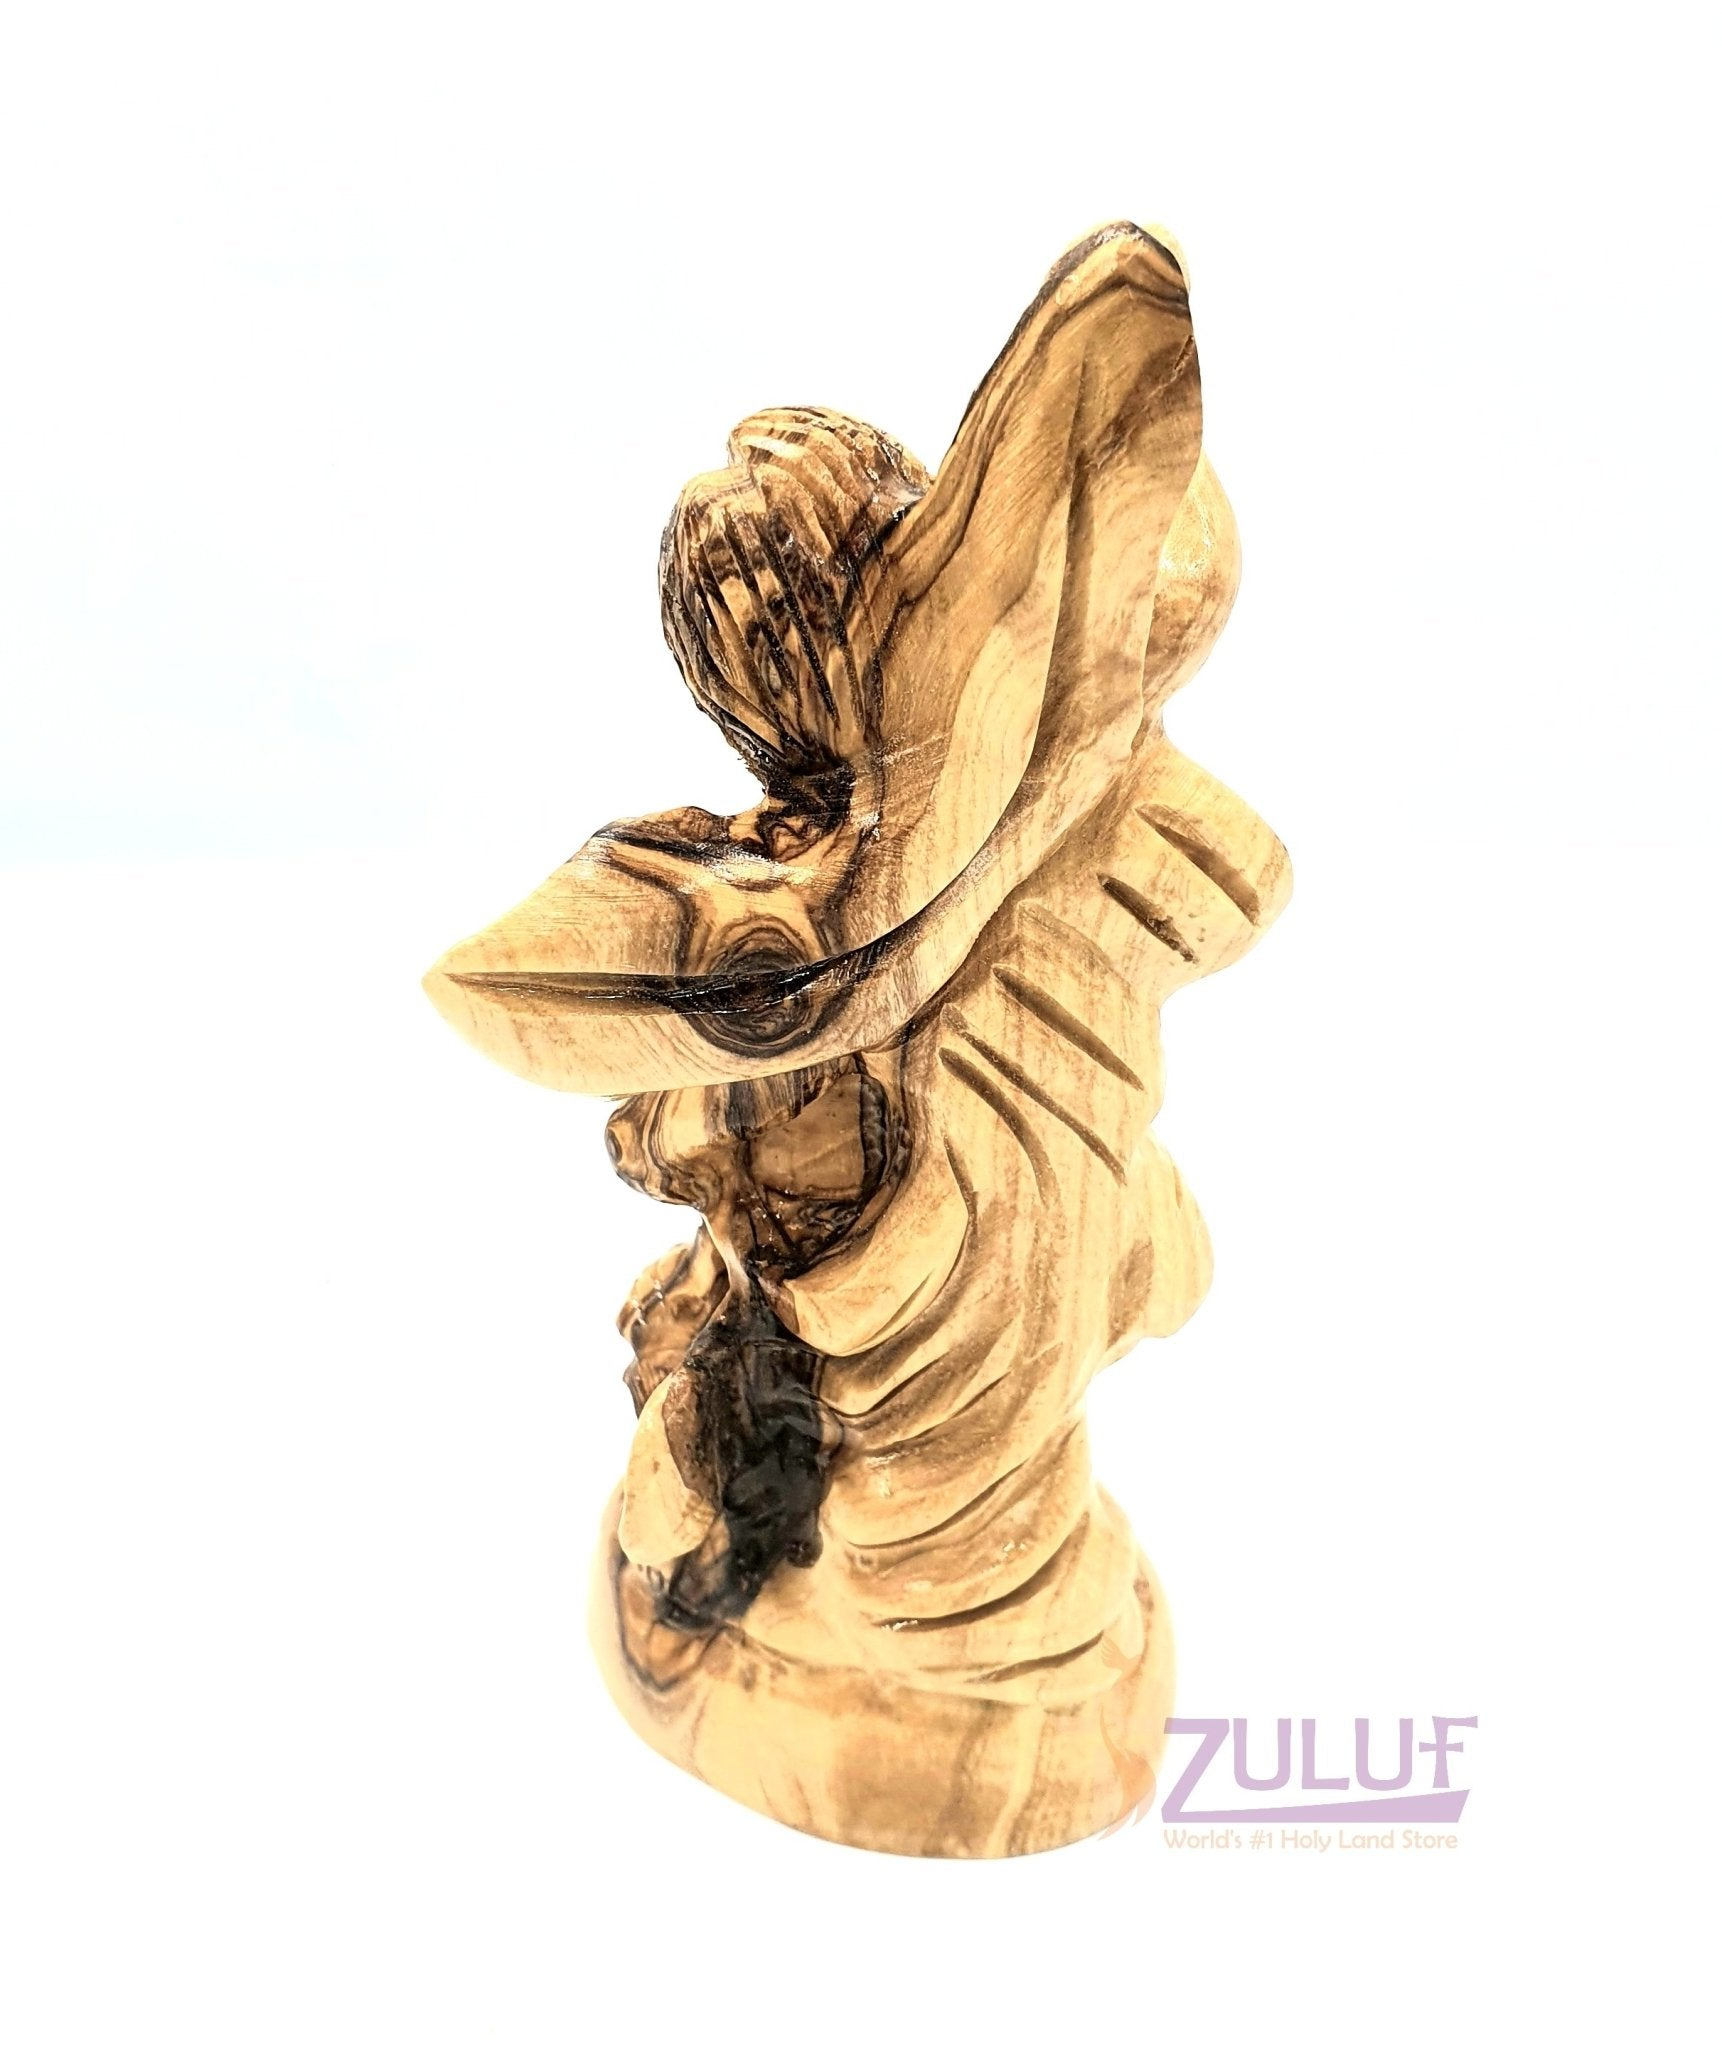 Archangel Michael Statue Olive Wood For Sale ANG030 - Zuluf